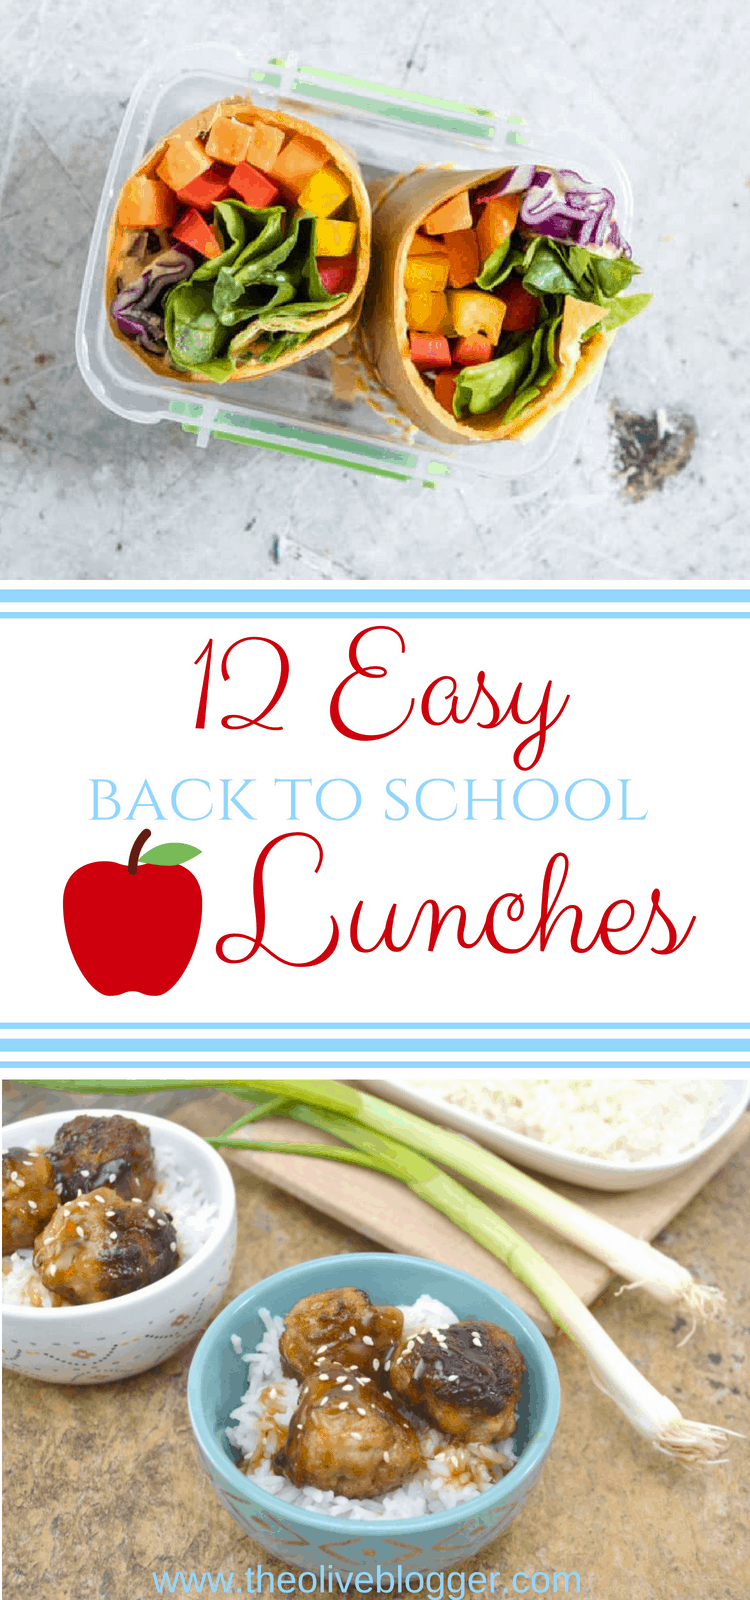 Lunches don't have to be boring anymore! These easy to make lunch ideas are full of flavor, guaranteeing everyone will love them. #EasyLunchIdeas #BacktoSchoolLunches #LunchRecipes #BacktoSchool